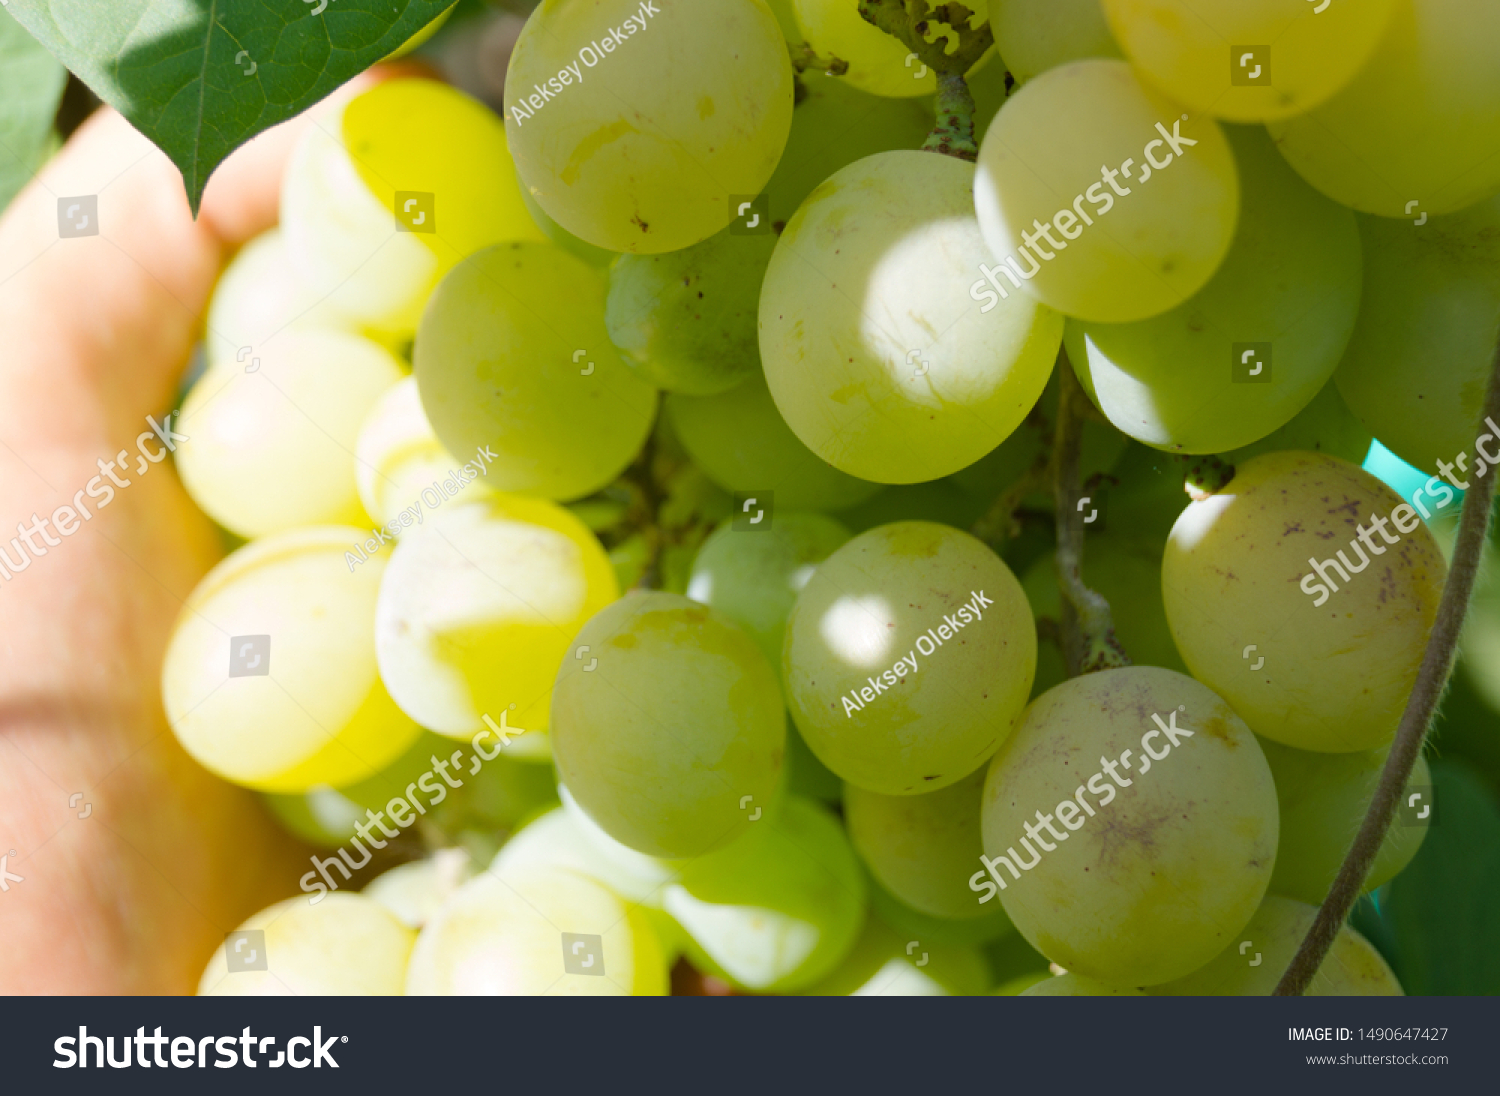 Harvest grapes. Large grapes. Grapes and winemaking. Large grapes. #1490647427